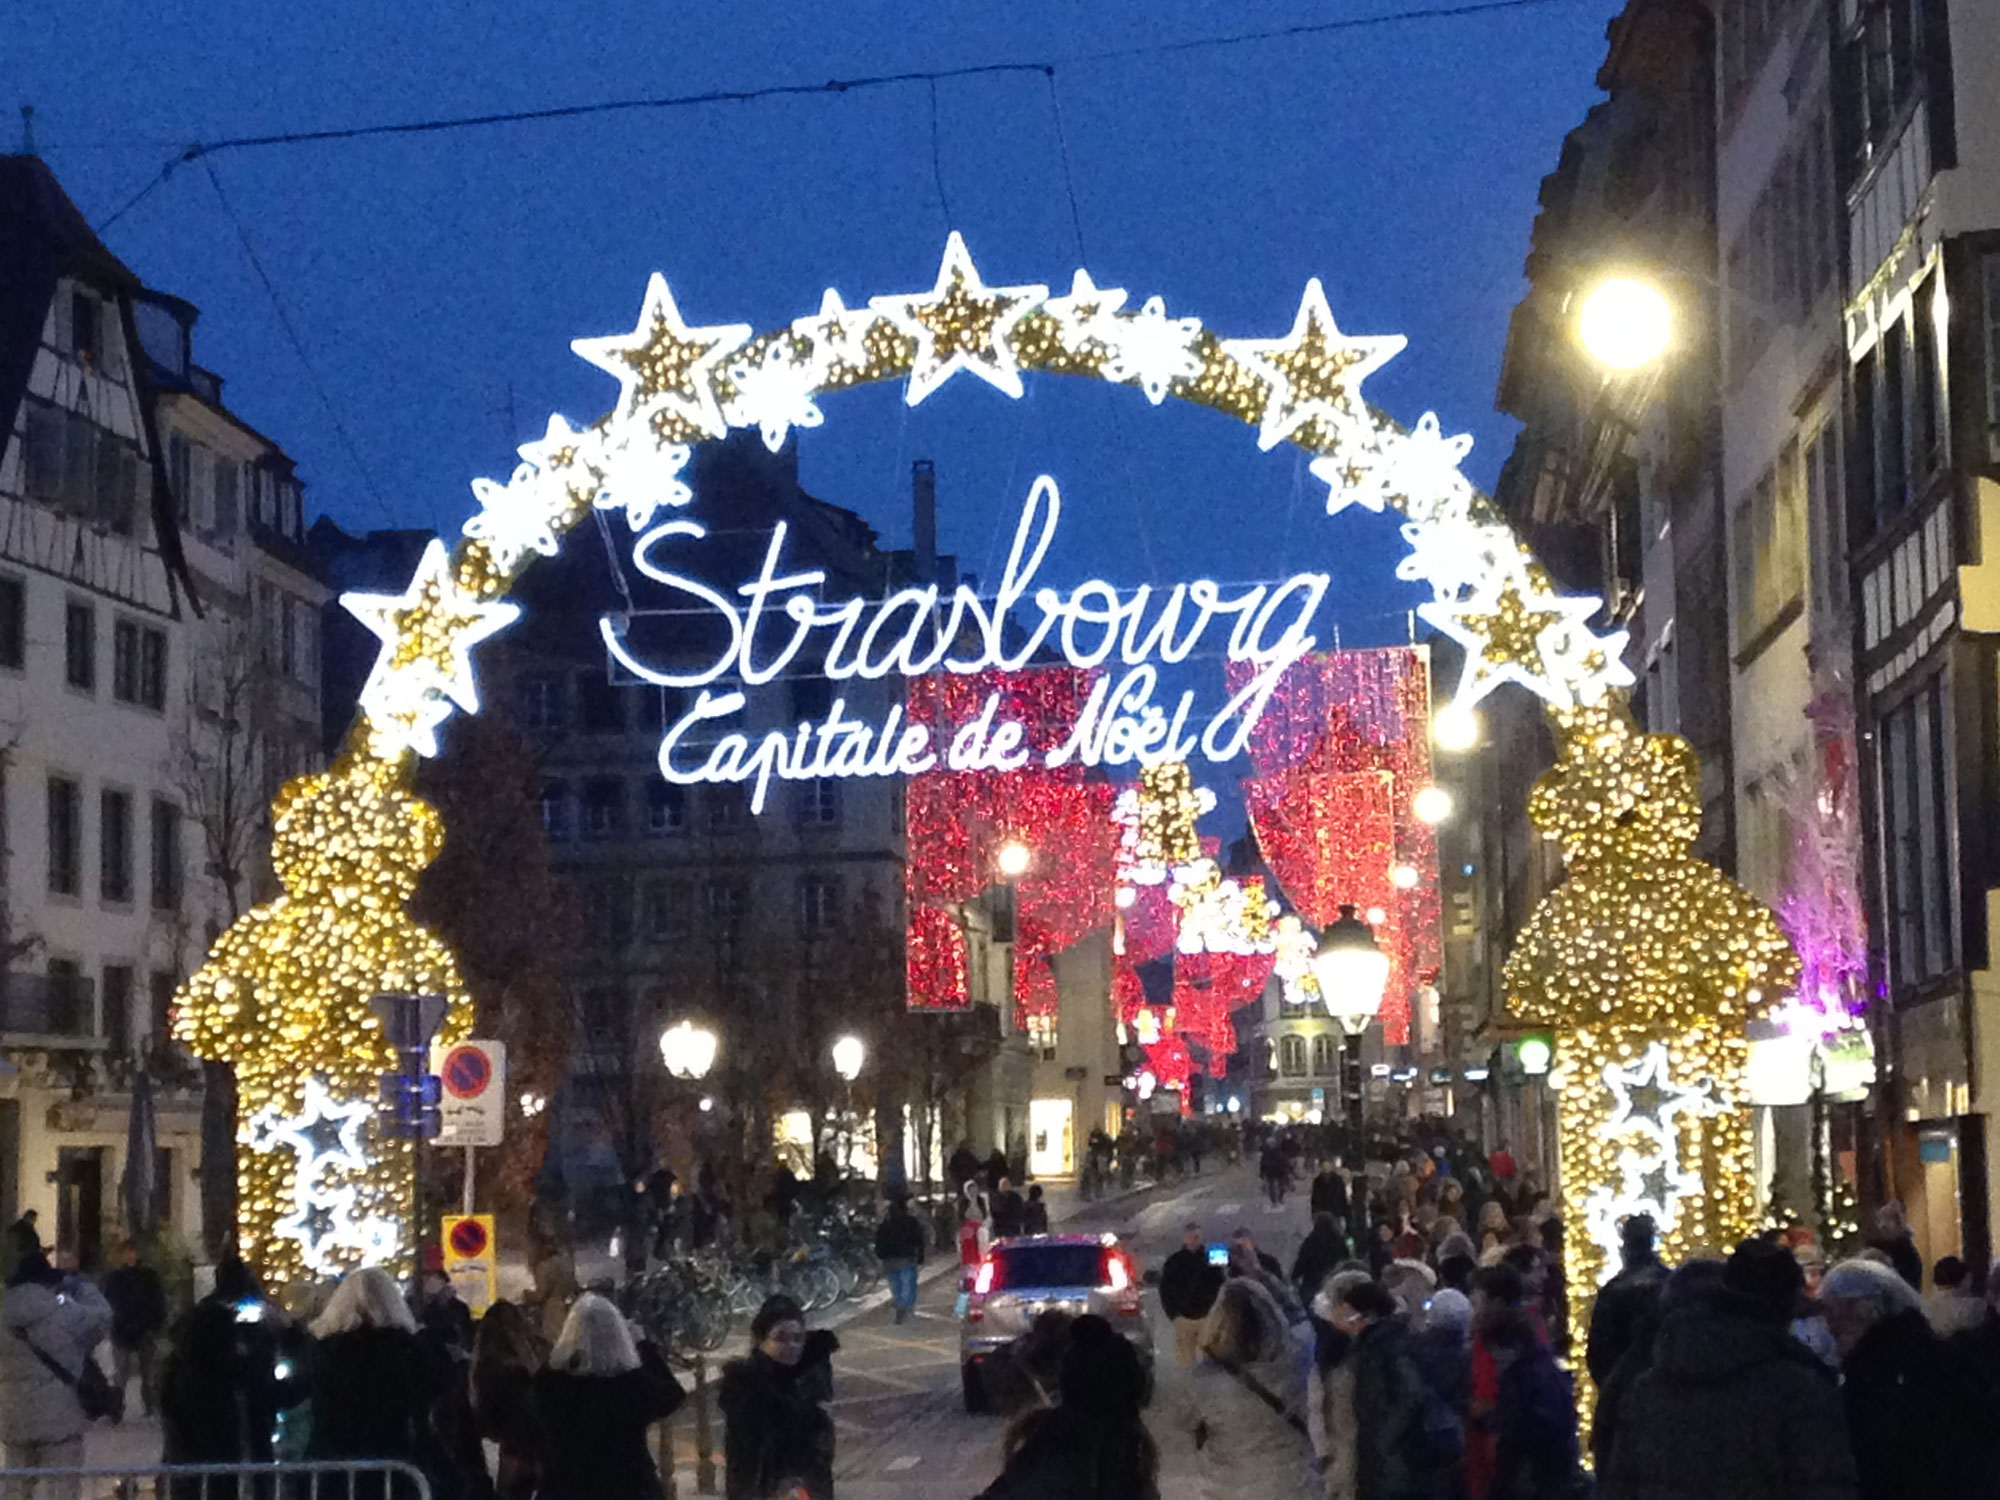 Strasbourg Christmas Market.Attack Near French Holiday Market Kills 3 Suspect At Large